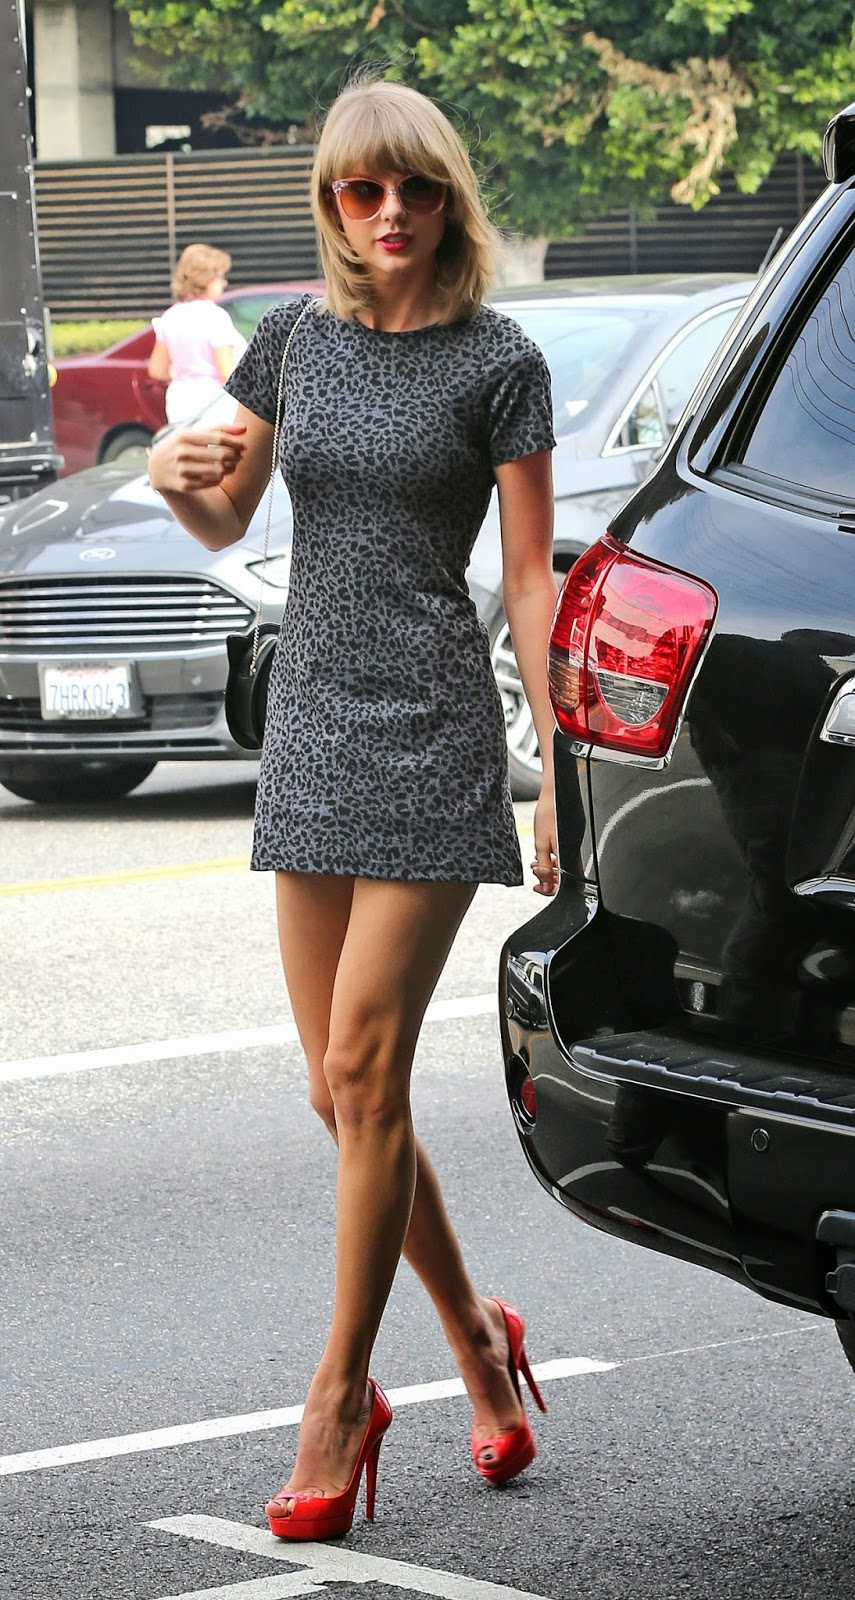 Singer-Songwriter, Actress, Fashion Model @ Taylor Swift in Mini Dress - Out for Lunch in Los Angeles